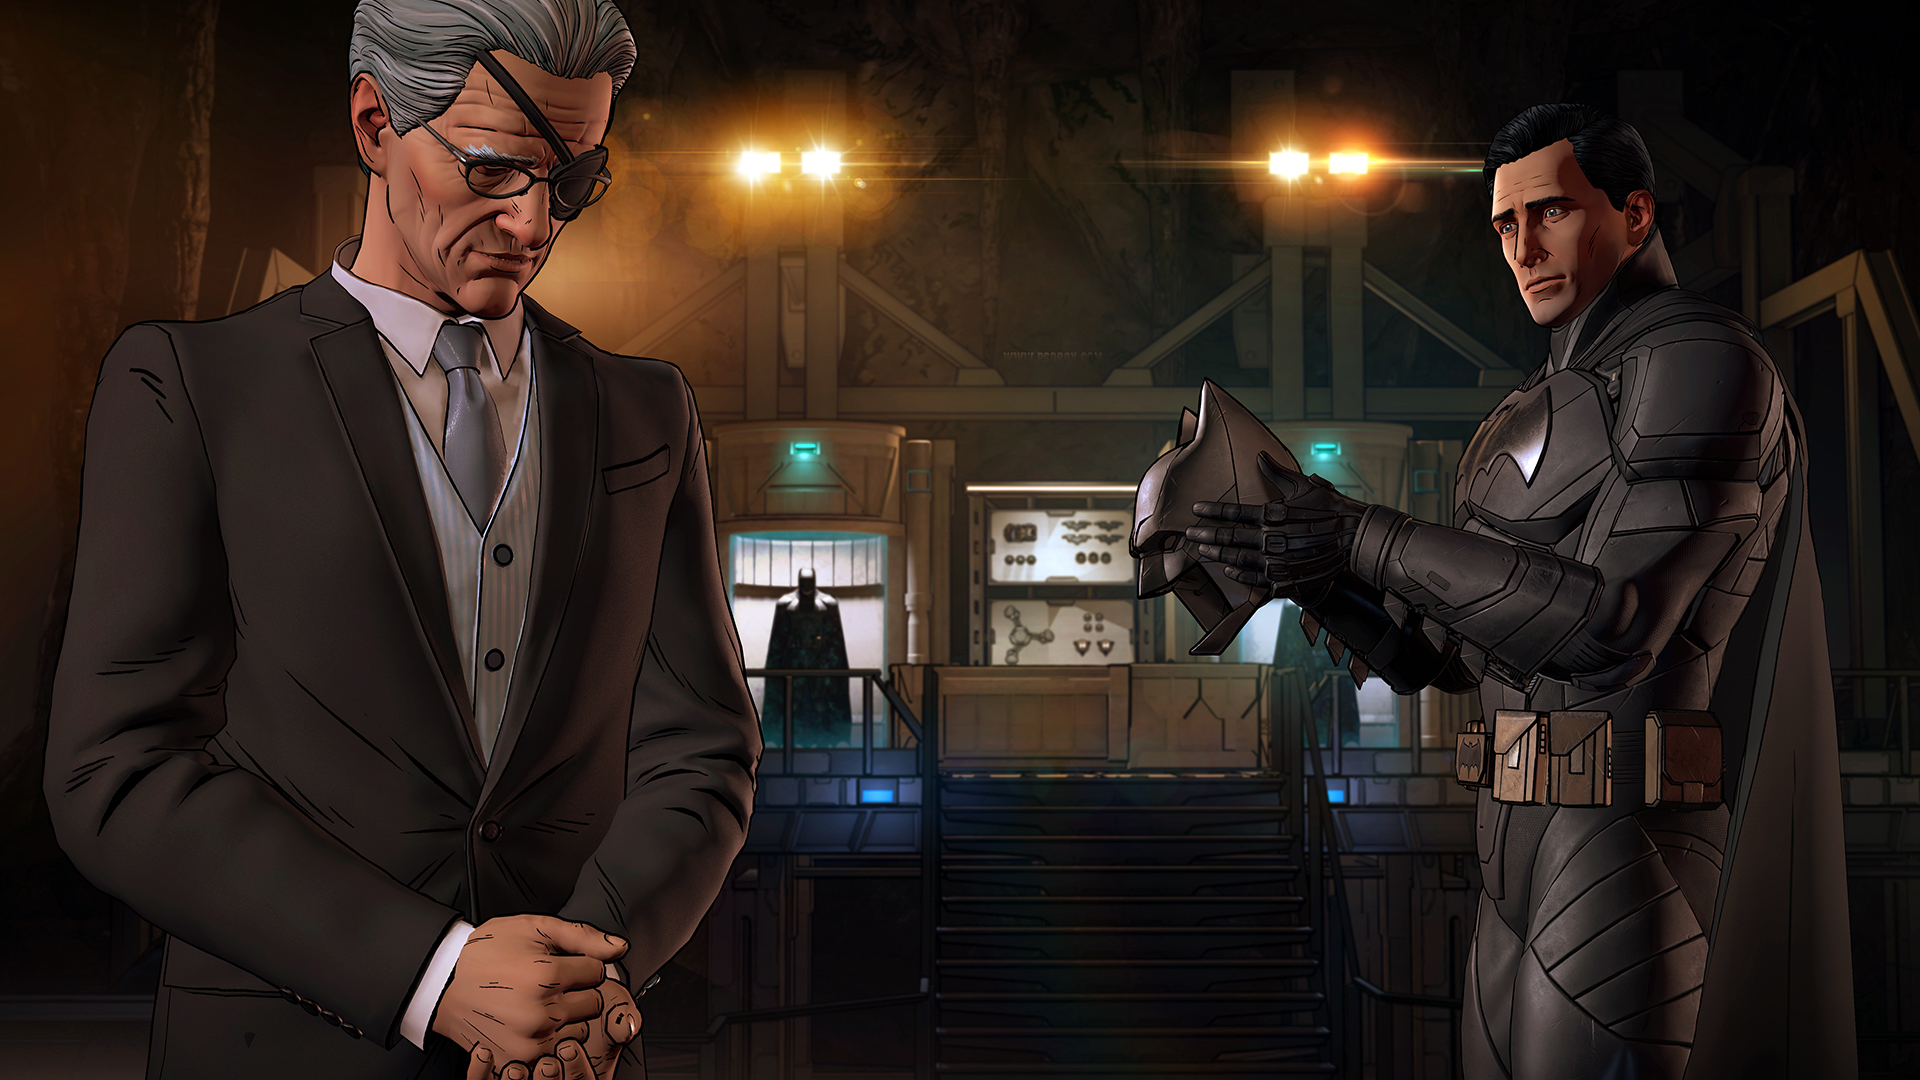 Telltale Games could be making Batman and Wolf Among Us sequels